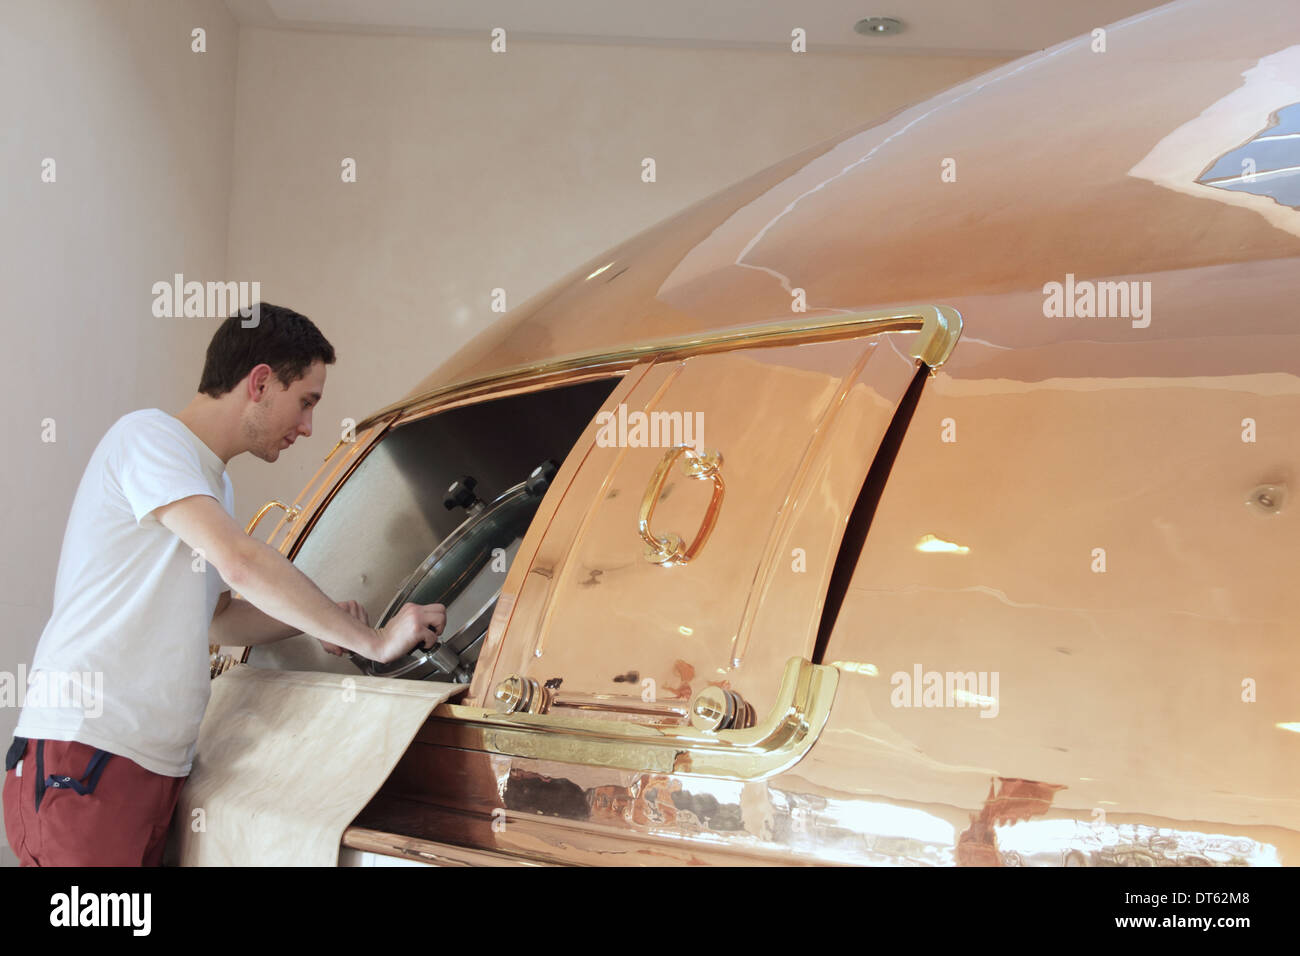 Man inspecting vat in brewery - Stock Image